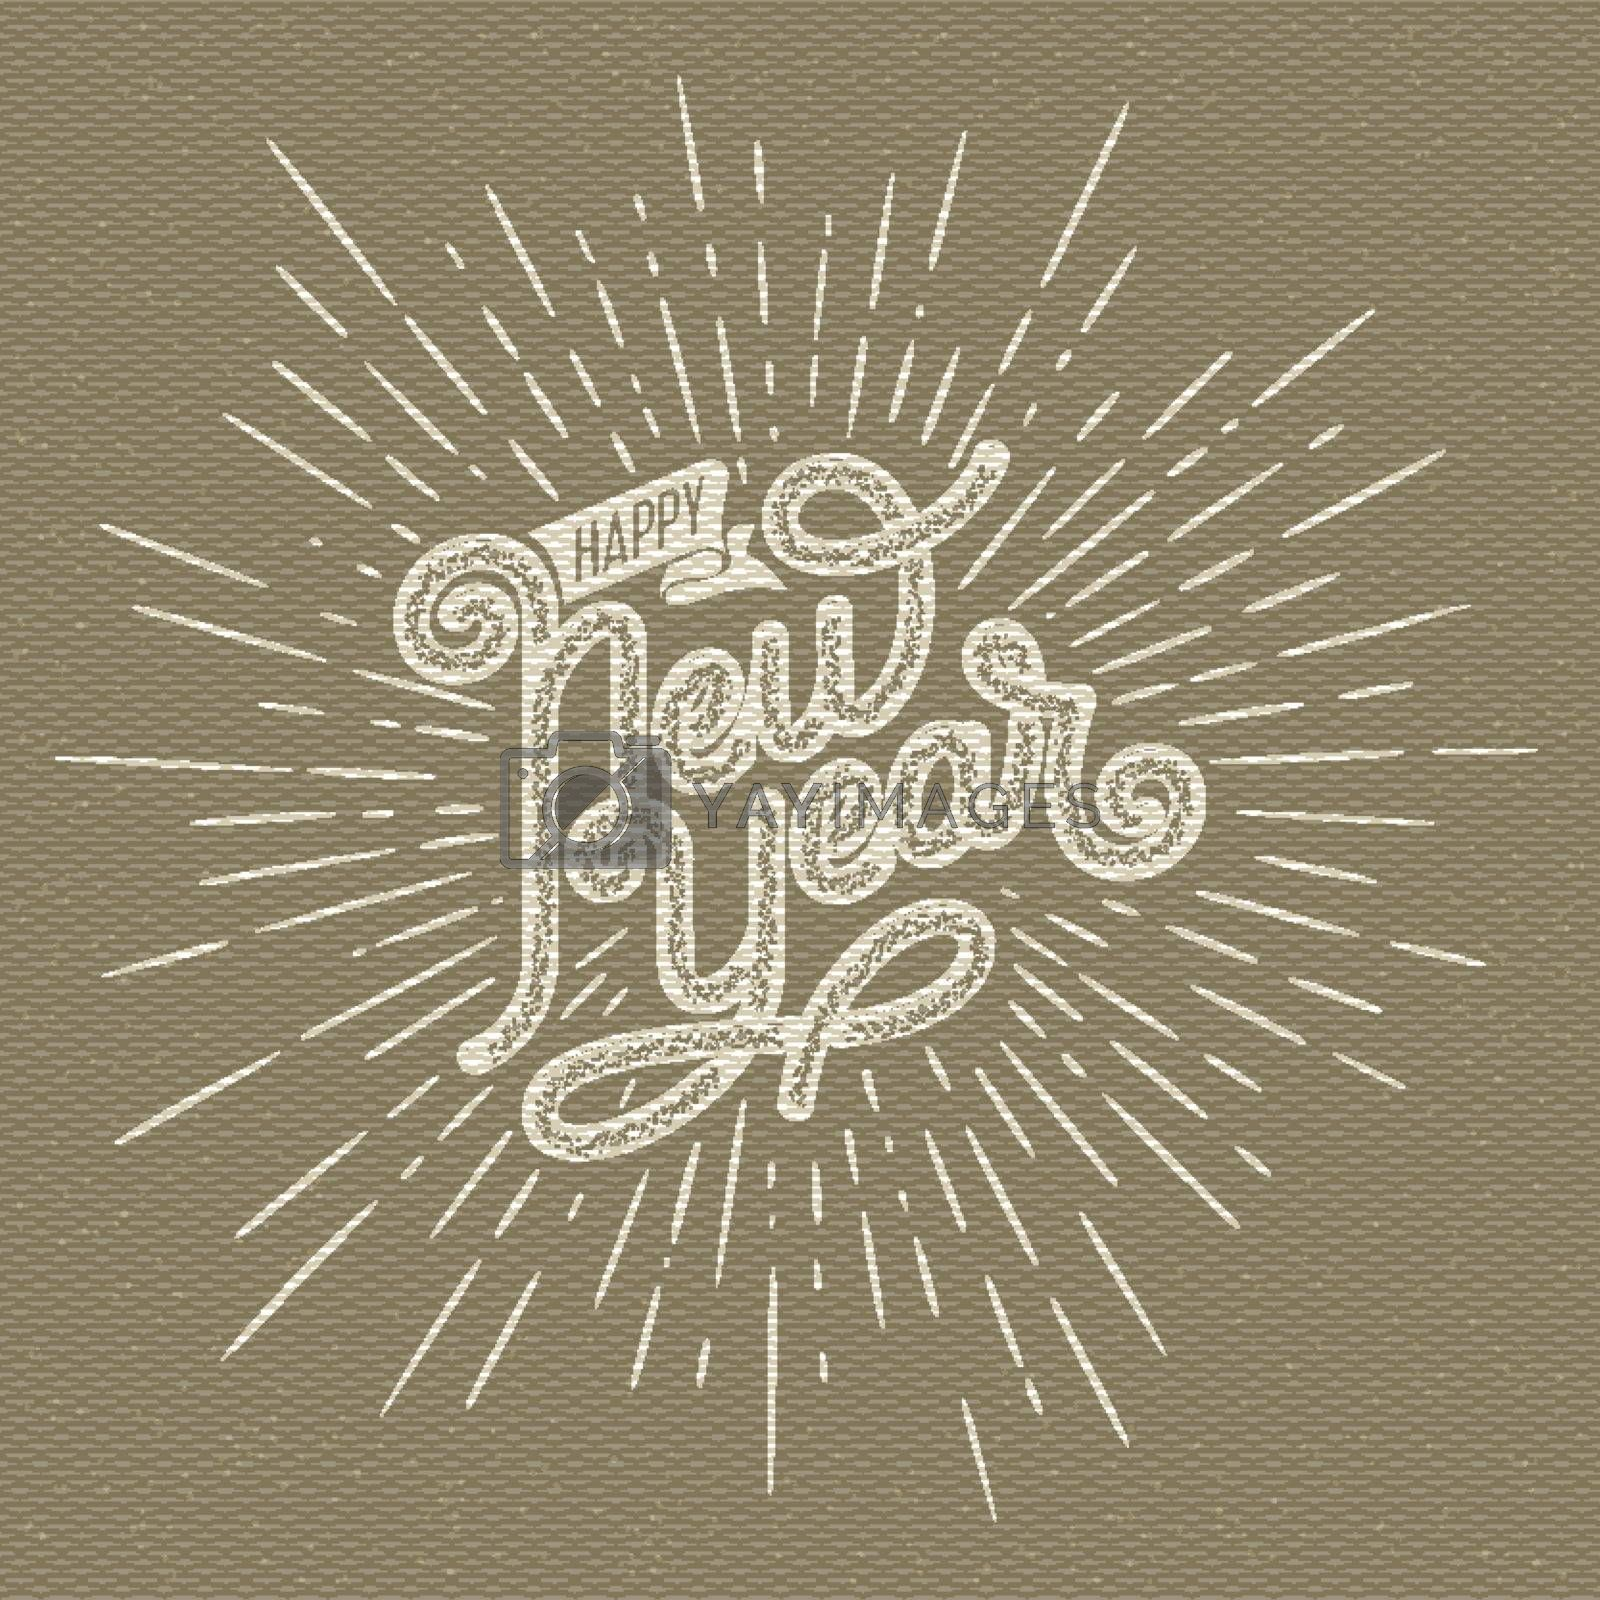 Happy New Year Lettering with burst rays. Holiday Vector Illustration. Lettering Composition And Light Sunburst